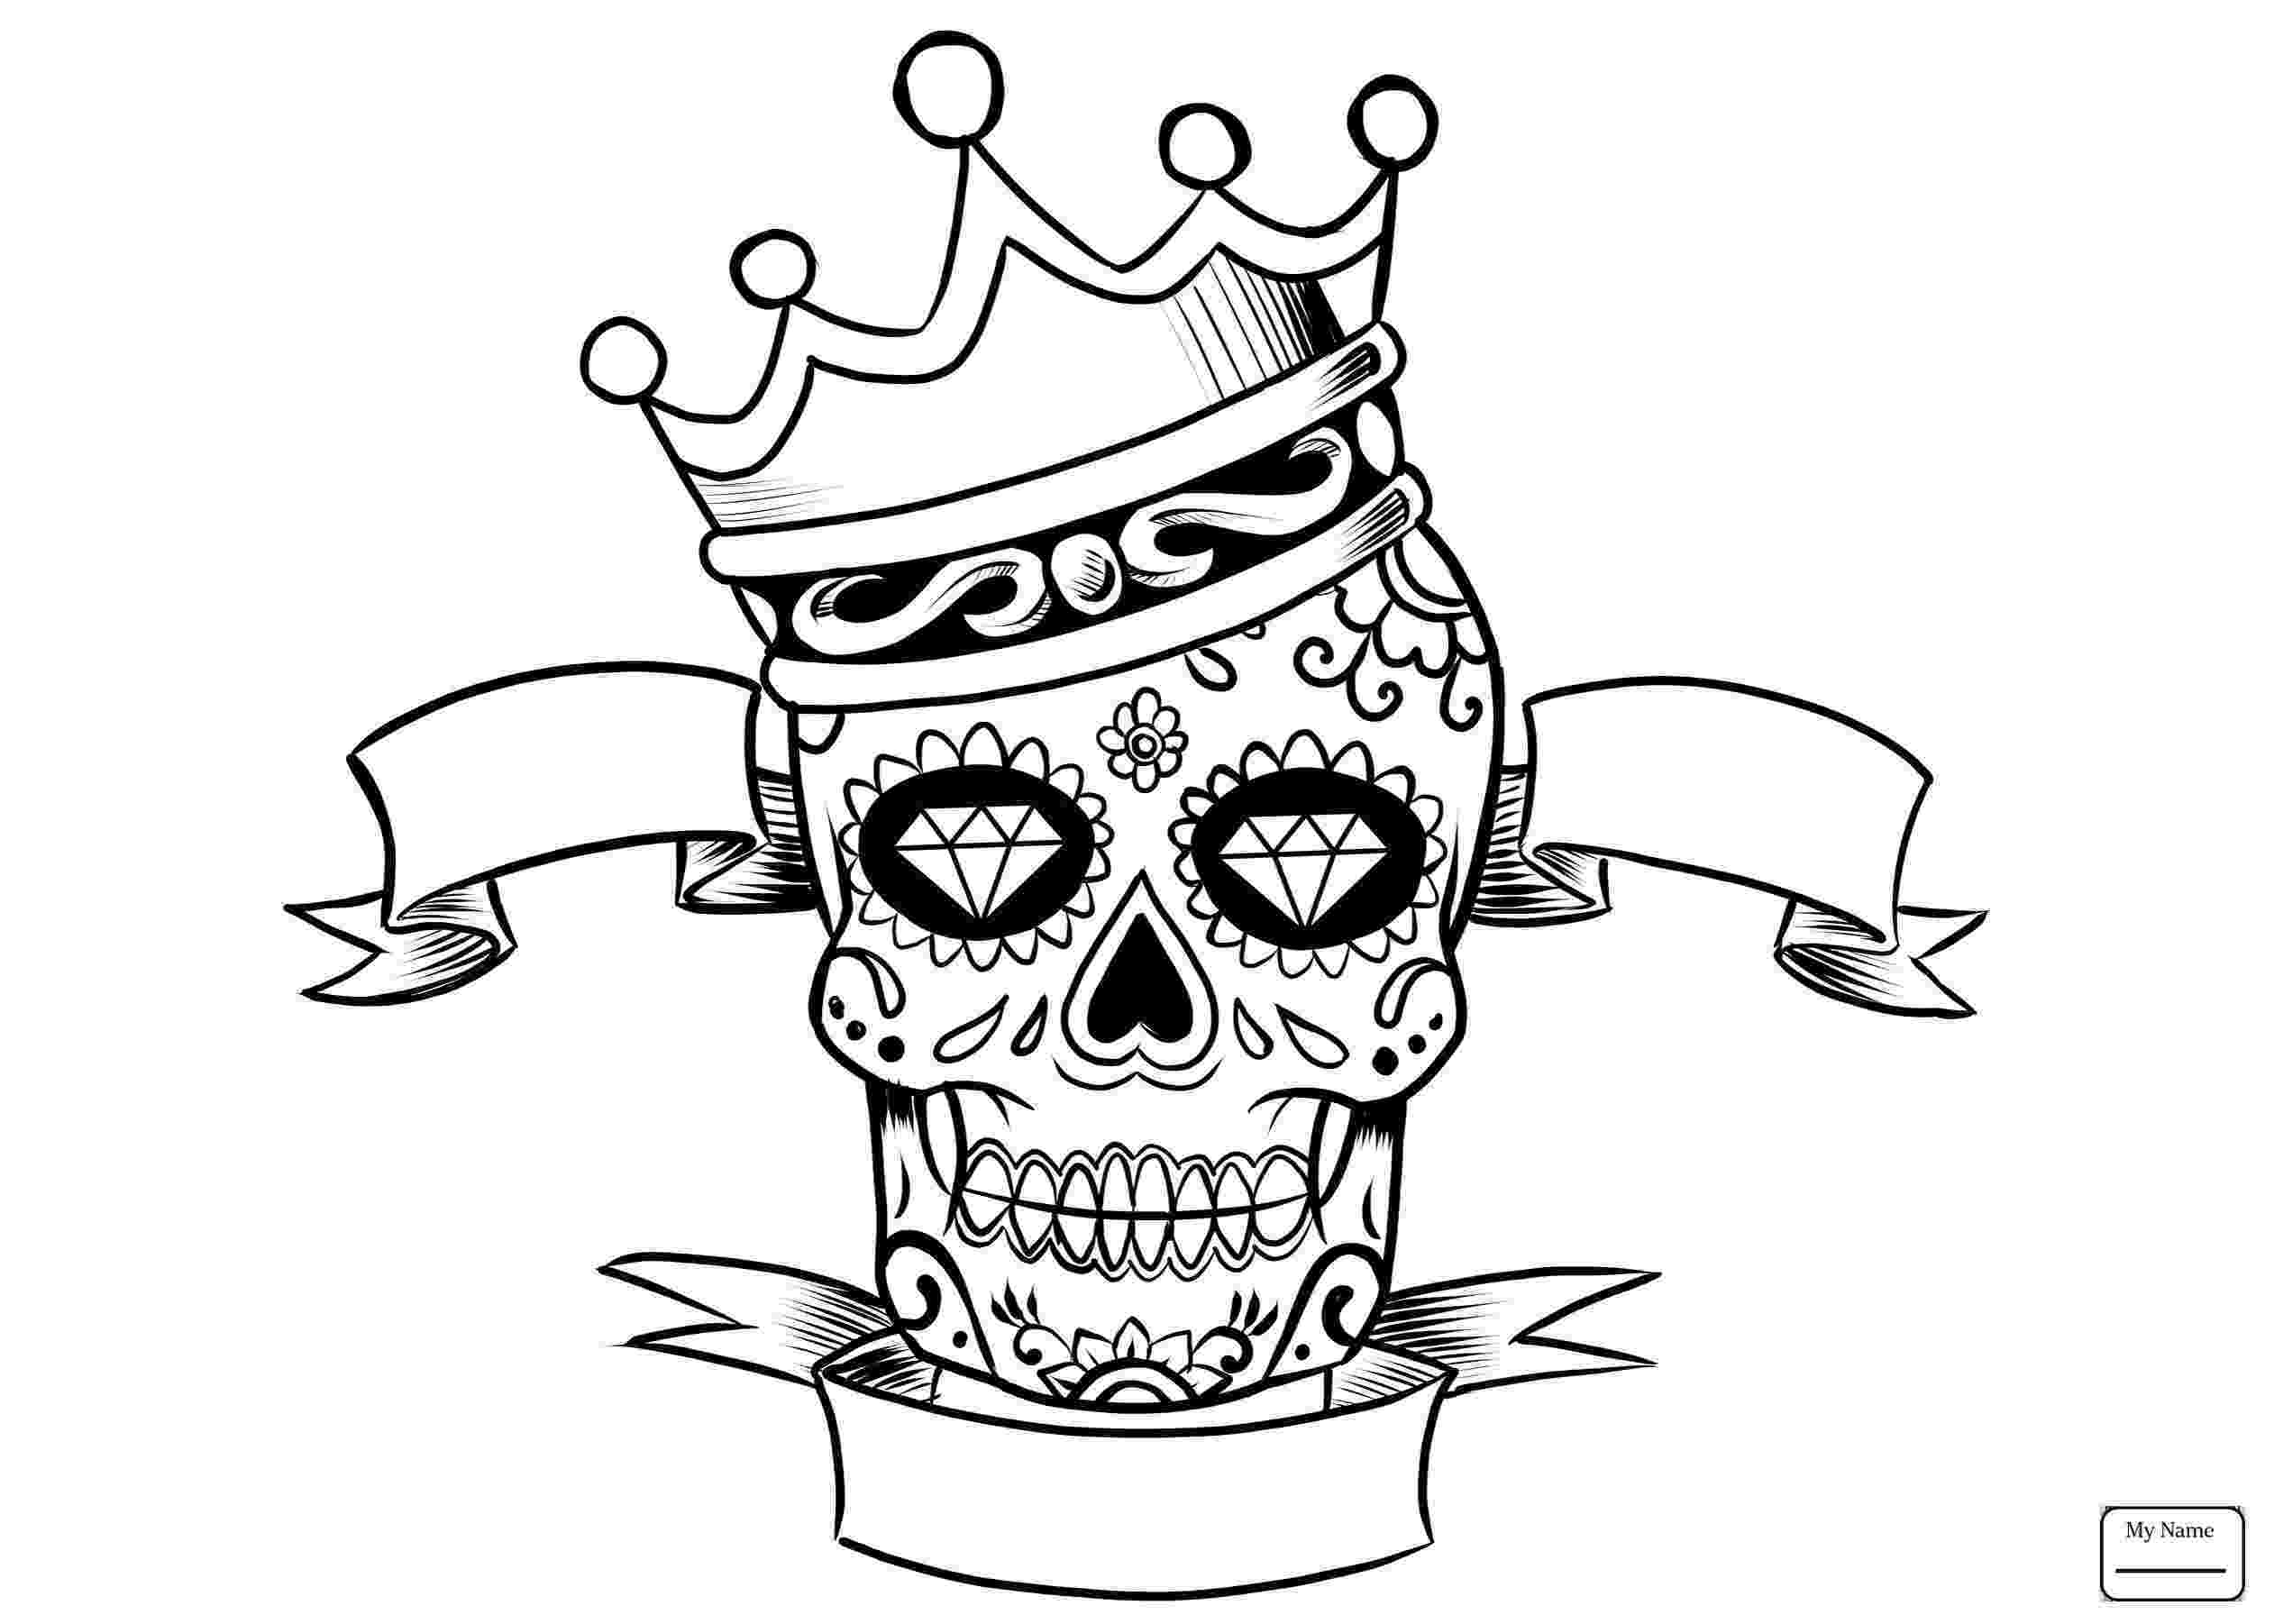 skulls coloring pages skull coloring pages for adults best coloring pages for kids skulls coloring pages